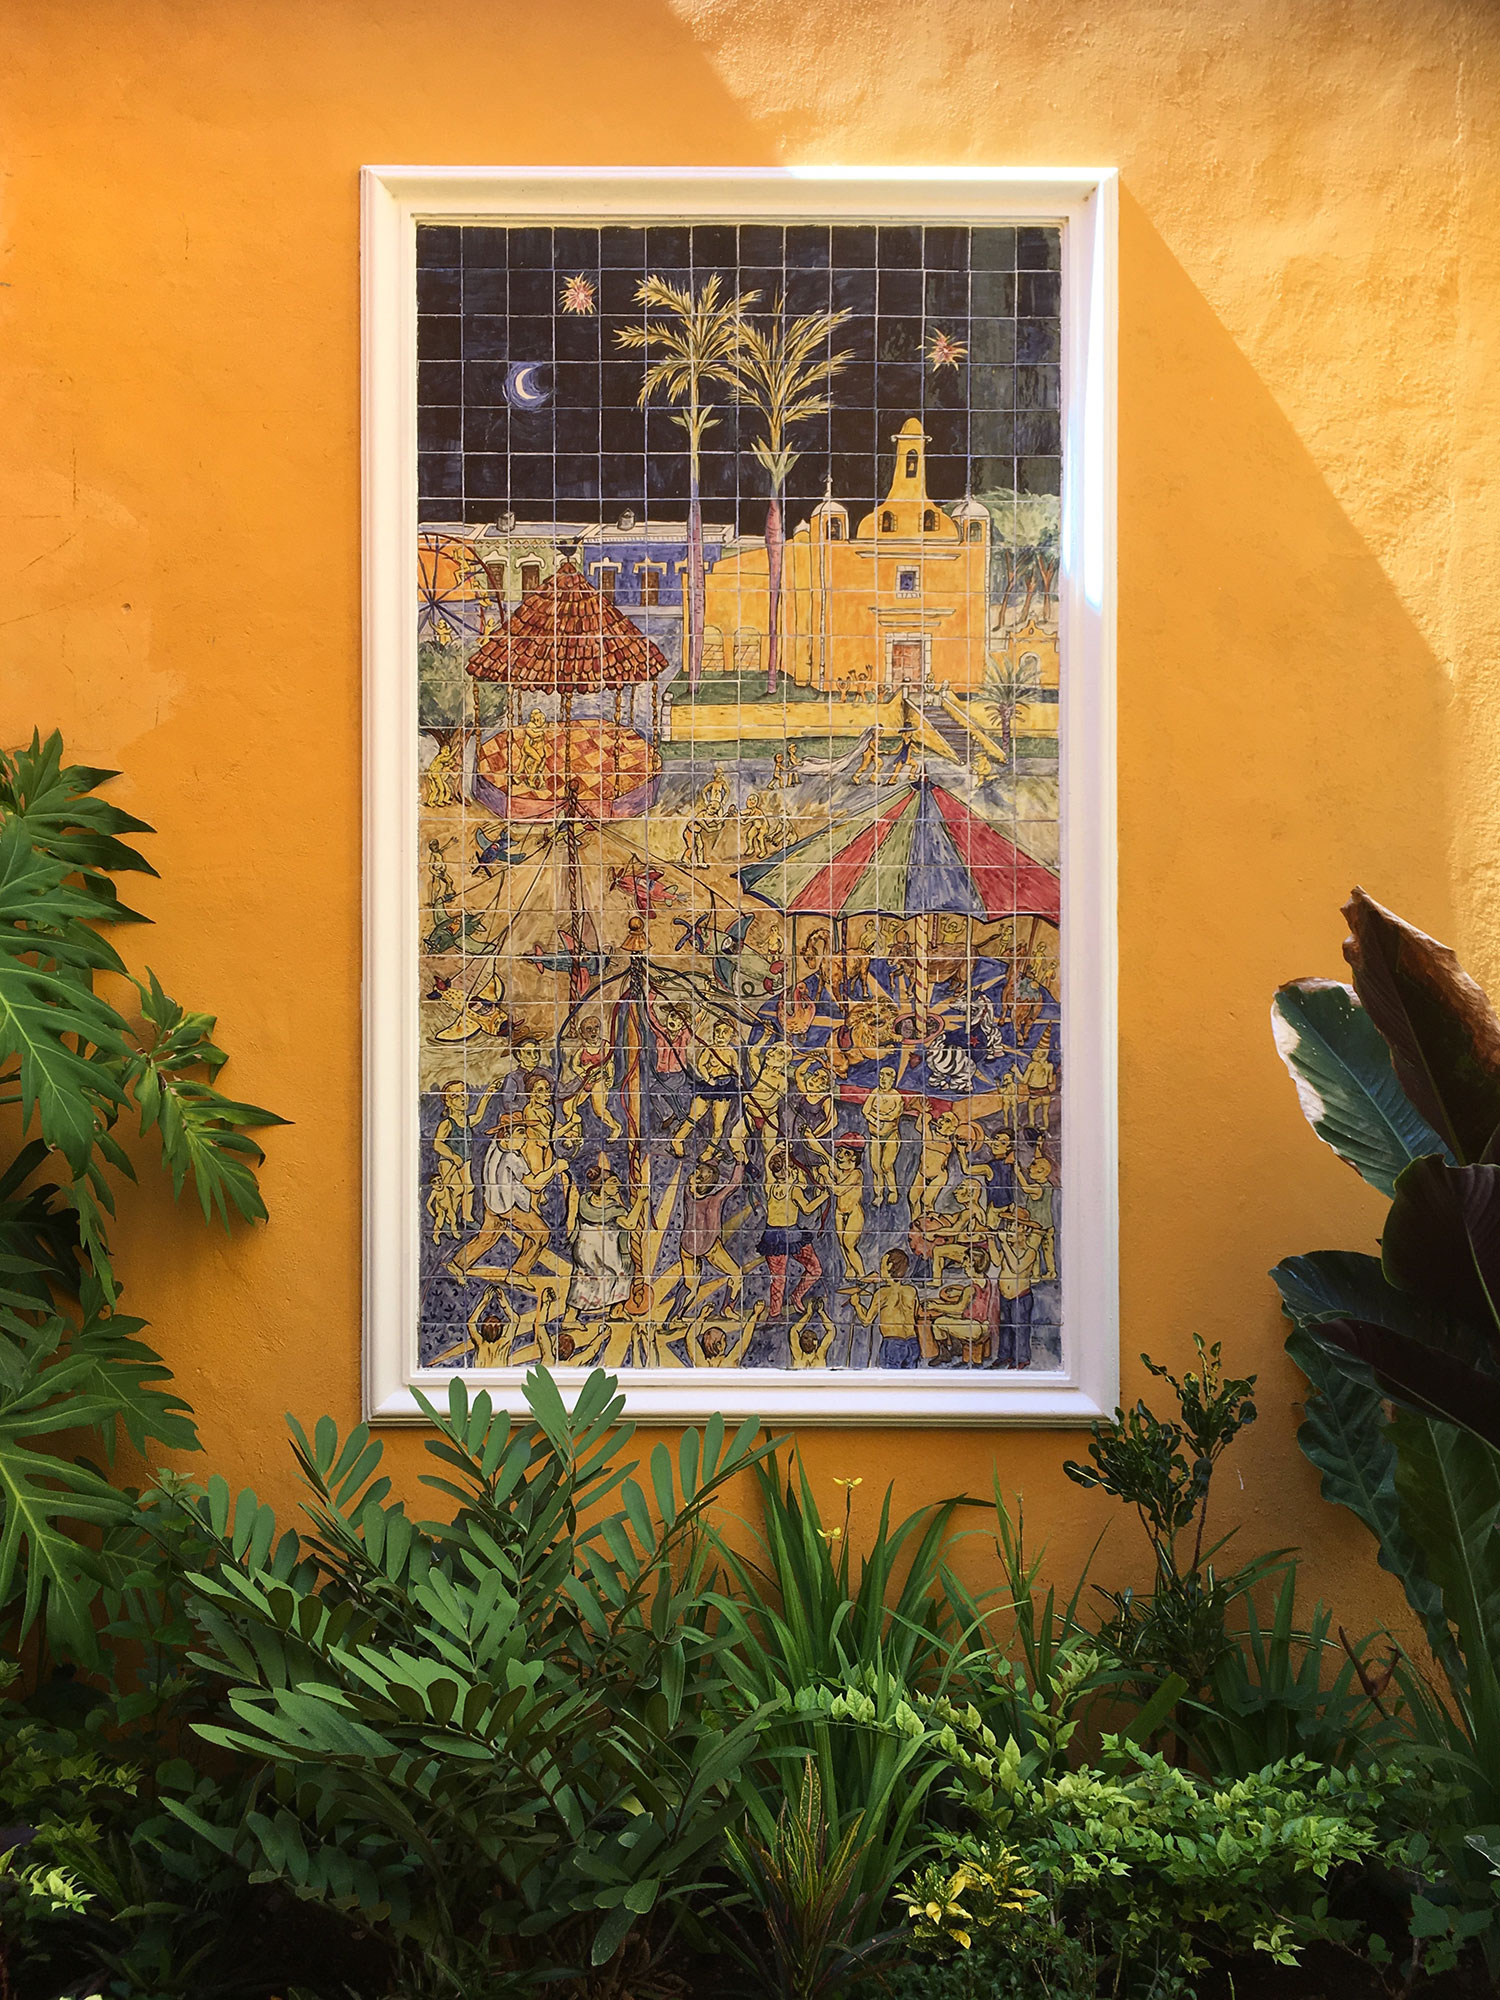 Tile murals by Daniel Rosel in the private garden of a guest's suite.